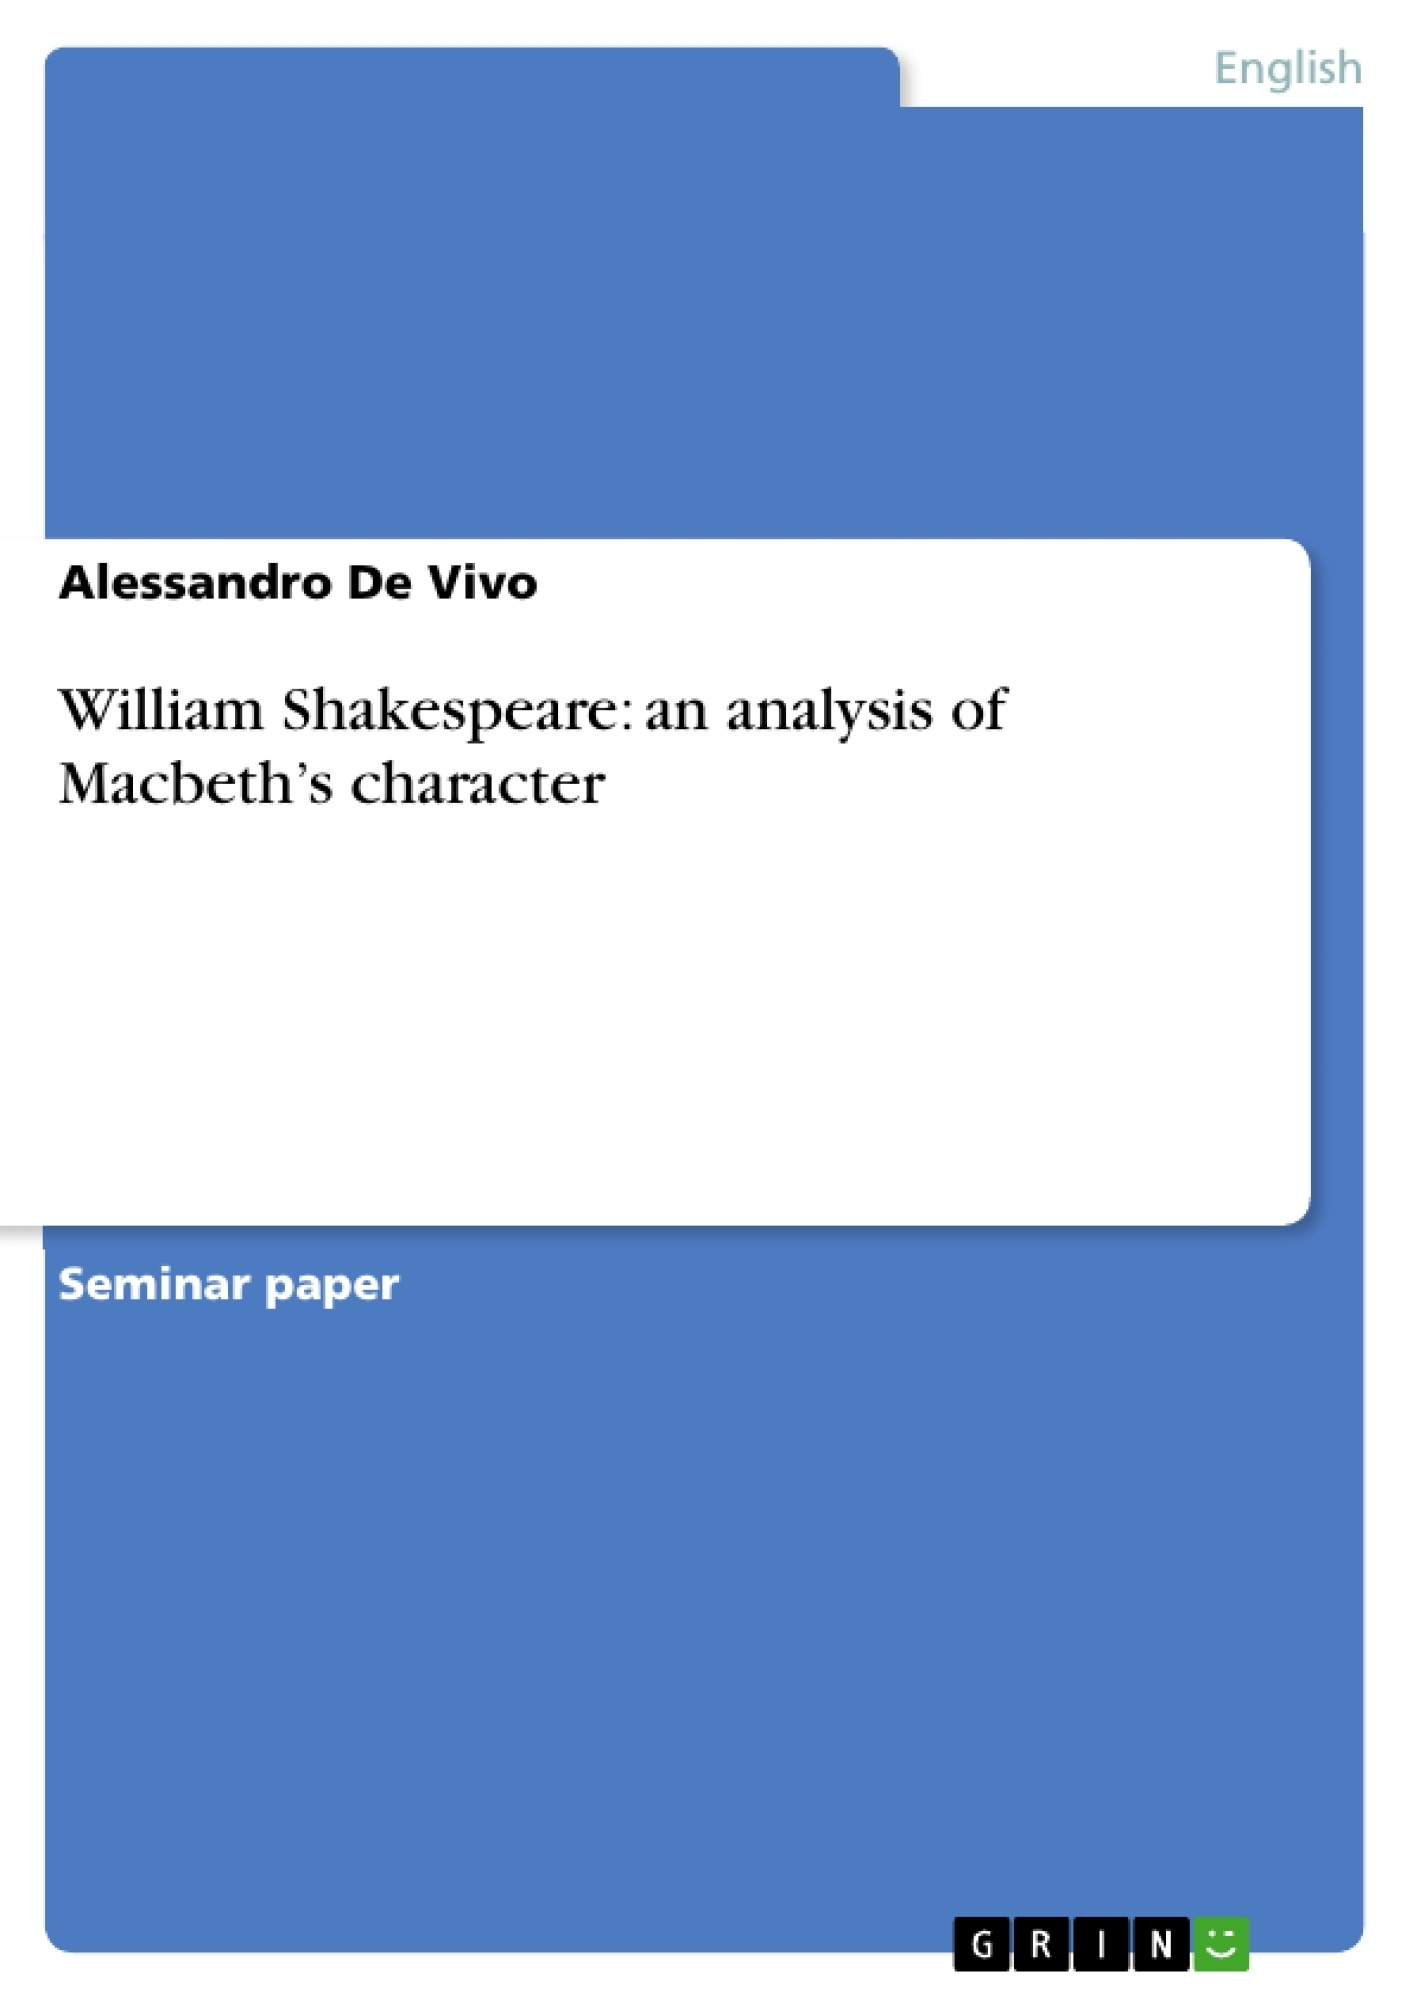 an analysis of the changes of macbeth in william shakespeares play Let us write you a custom essay sample on what is the significance of act 5, scene 1 in william shakespeare's play macbeth.